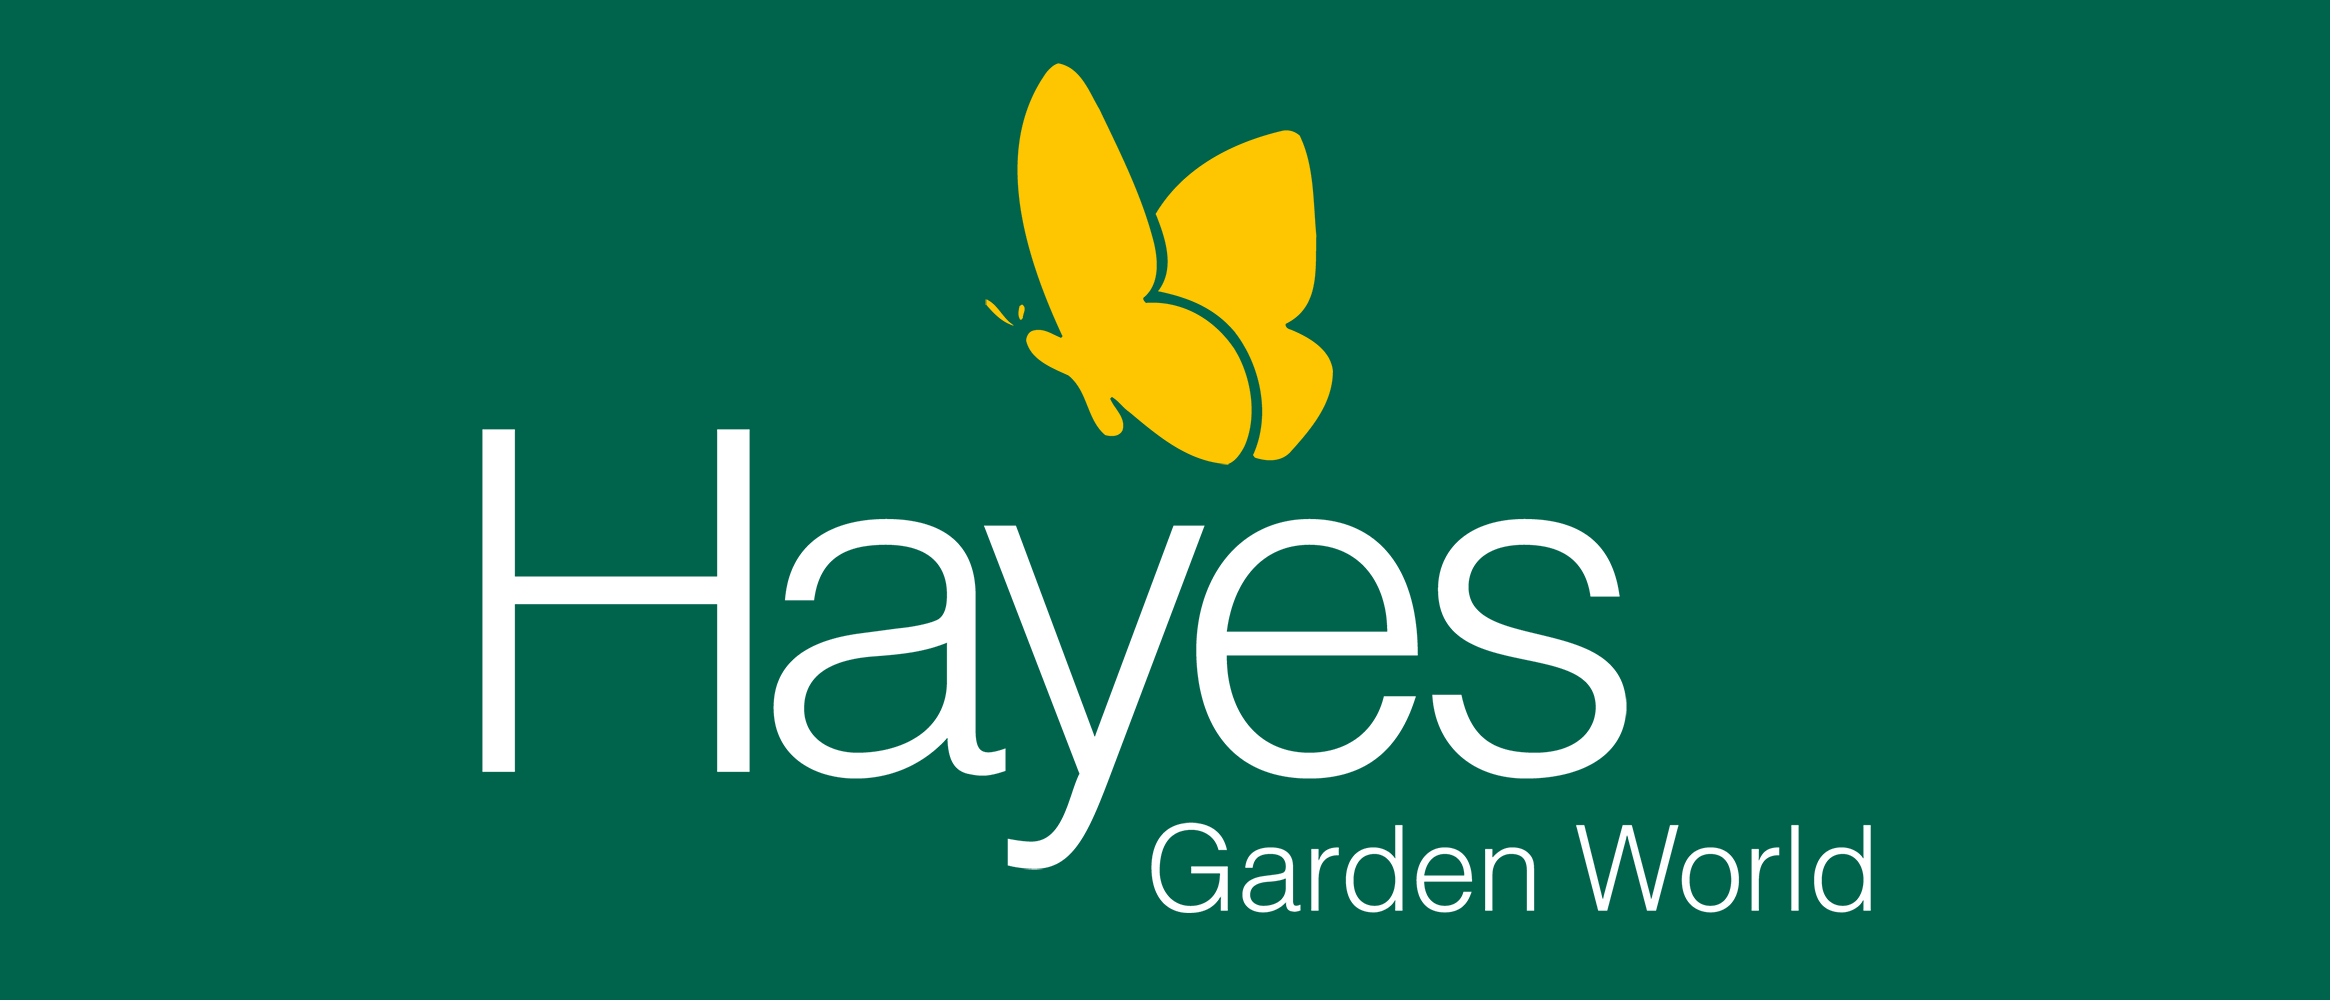 HayesGardenWorld.co.uk